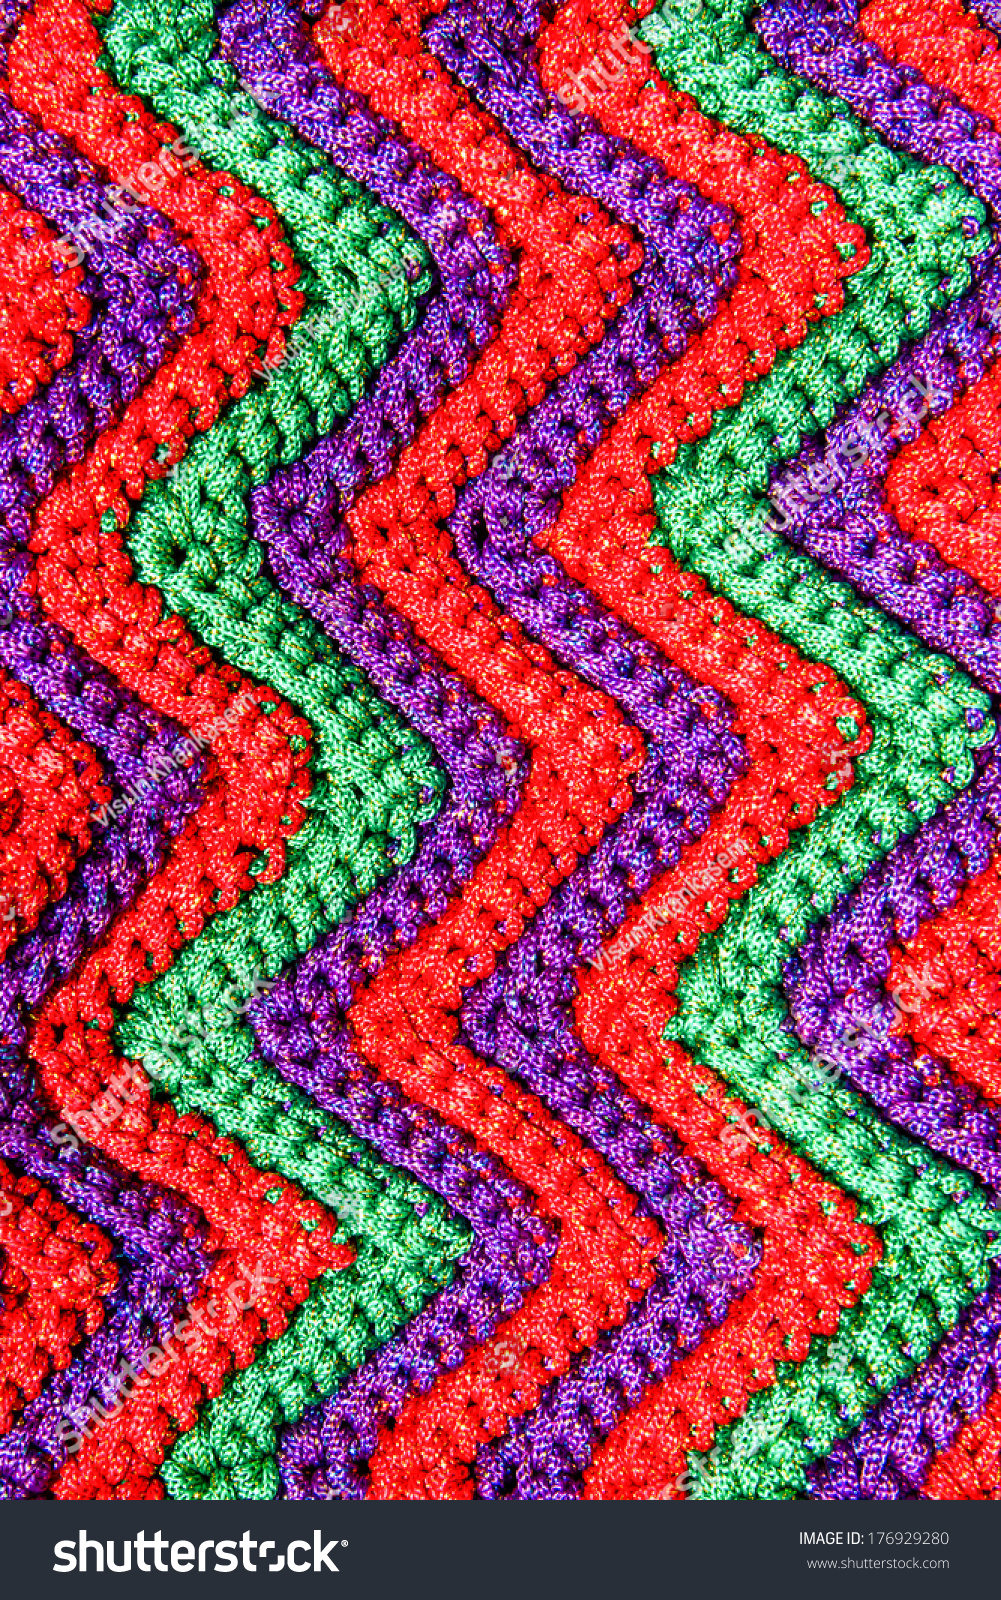 Colorful Crocheting Pattern Close Background Stock Photo (Royalty ...